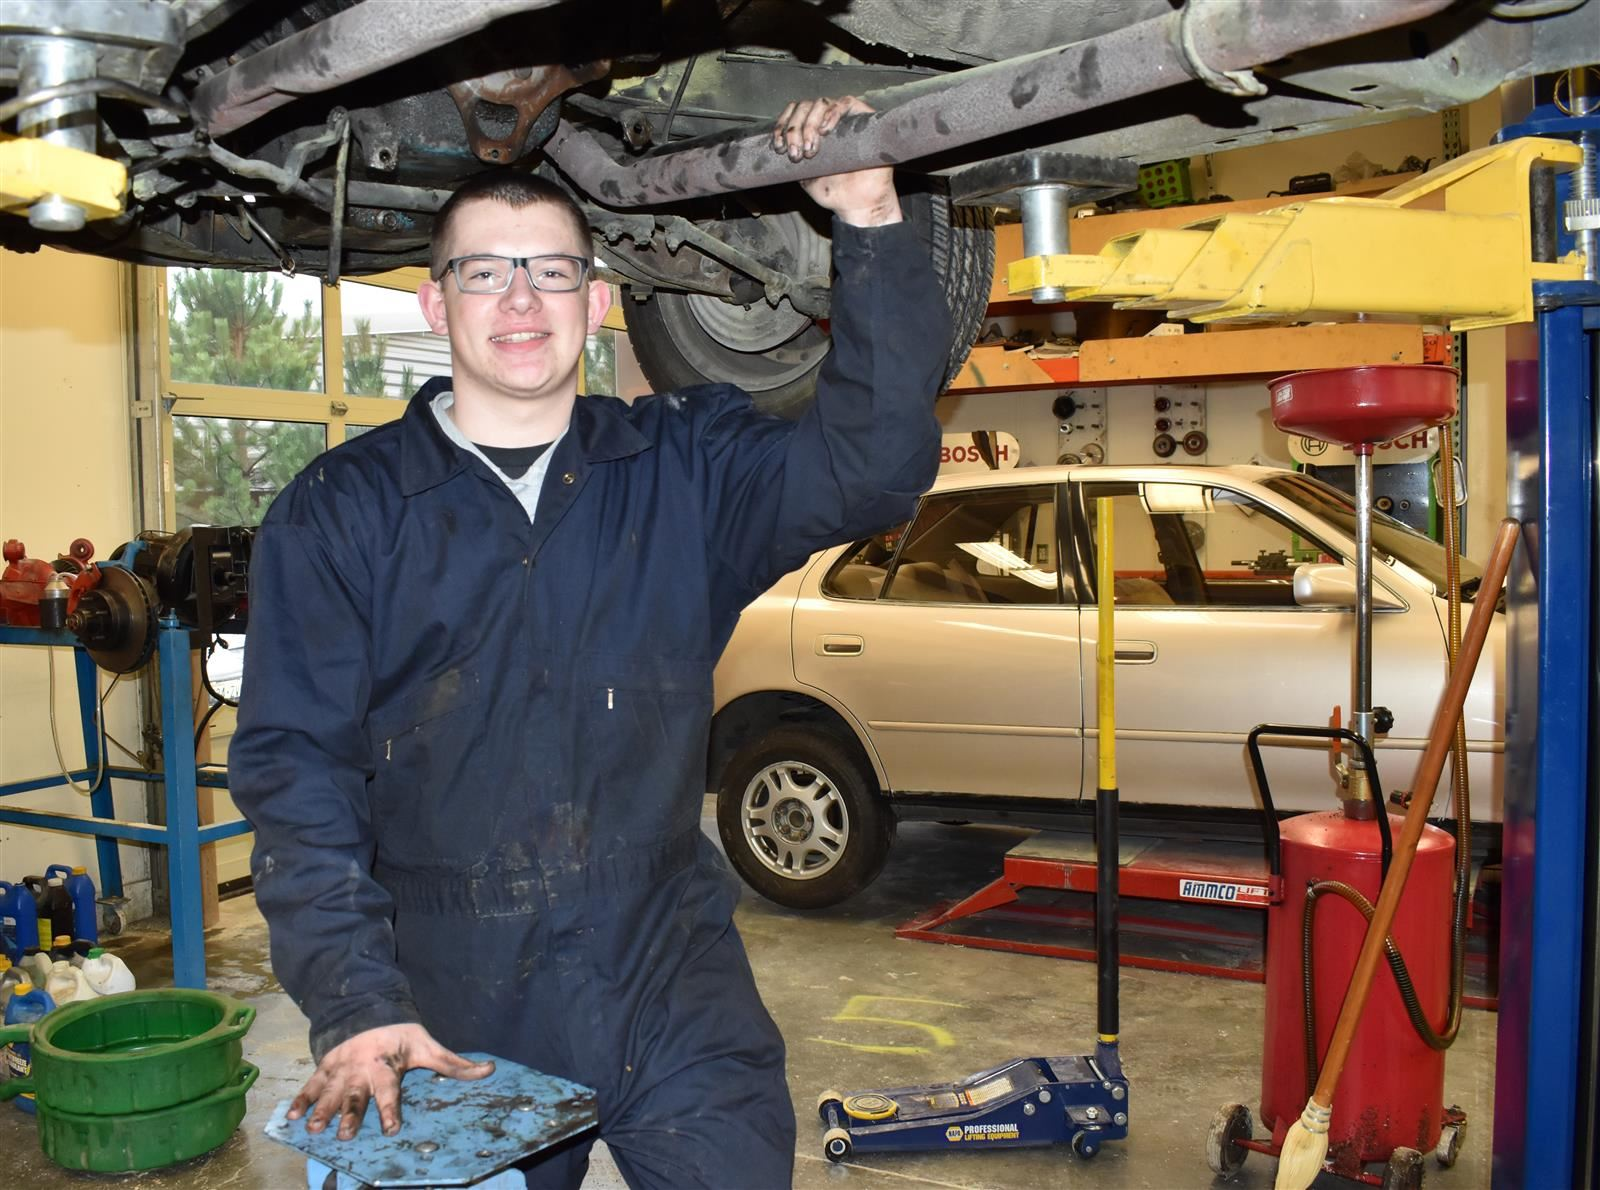 Student working on a car